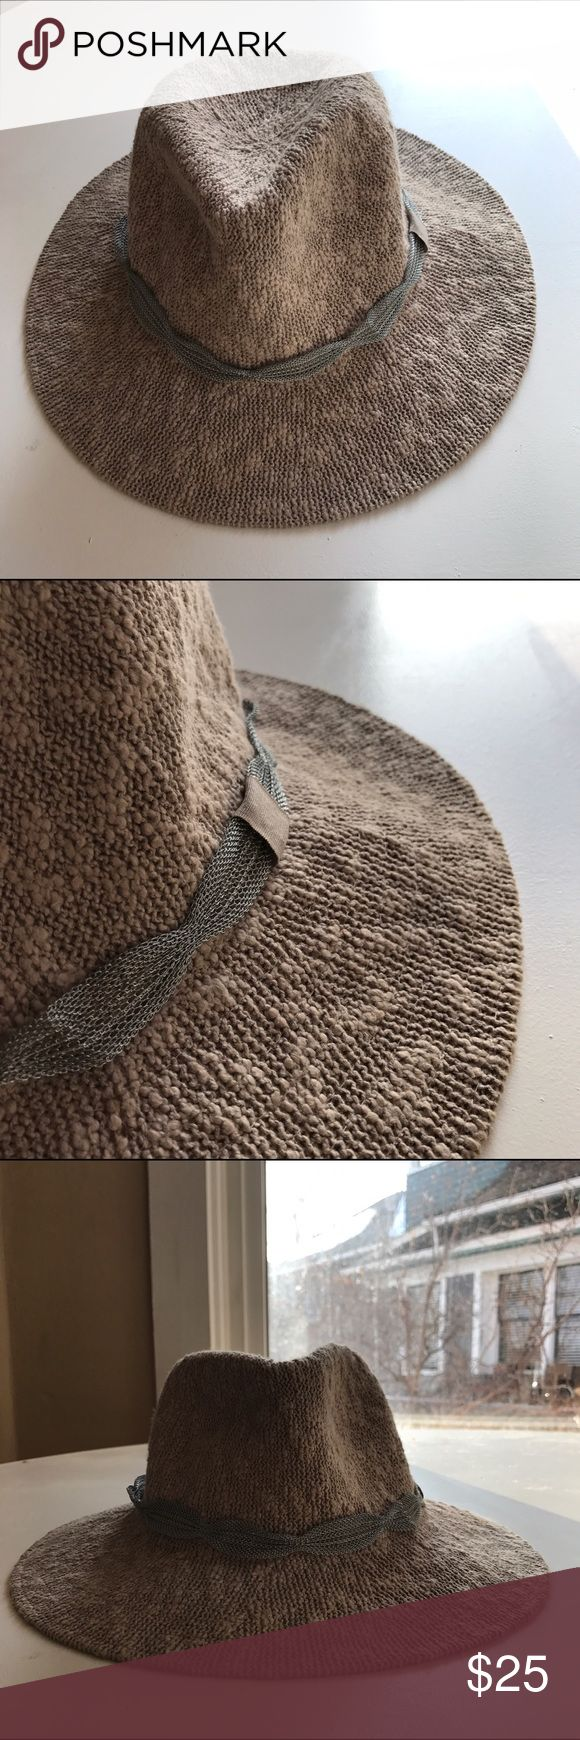 Anthropologie rancher hat Beautiful hat from Anthropologie! Lightly worn. Anthropologie Accessories Hats